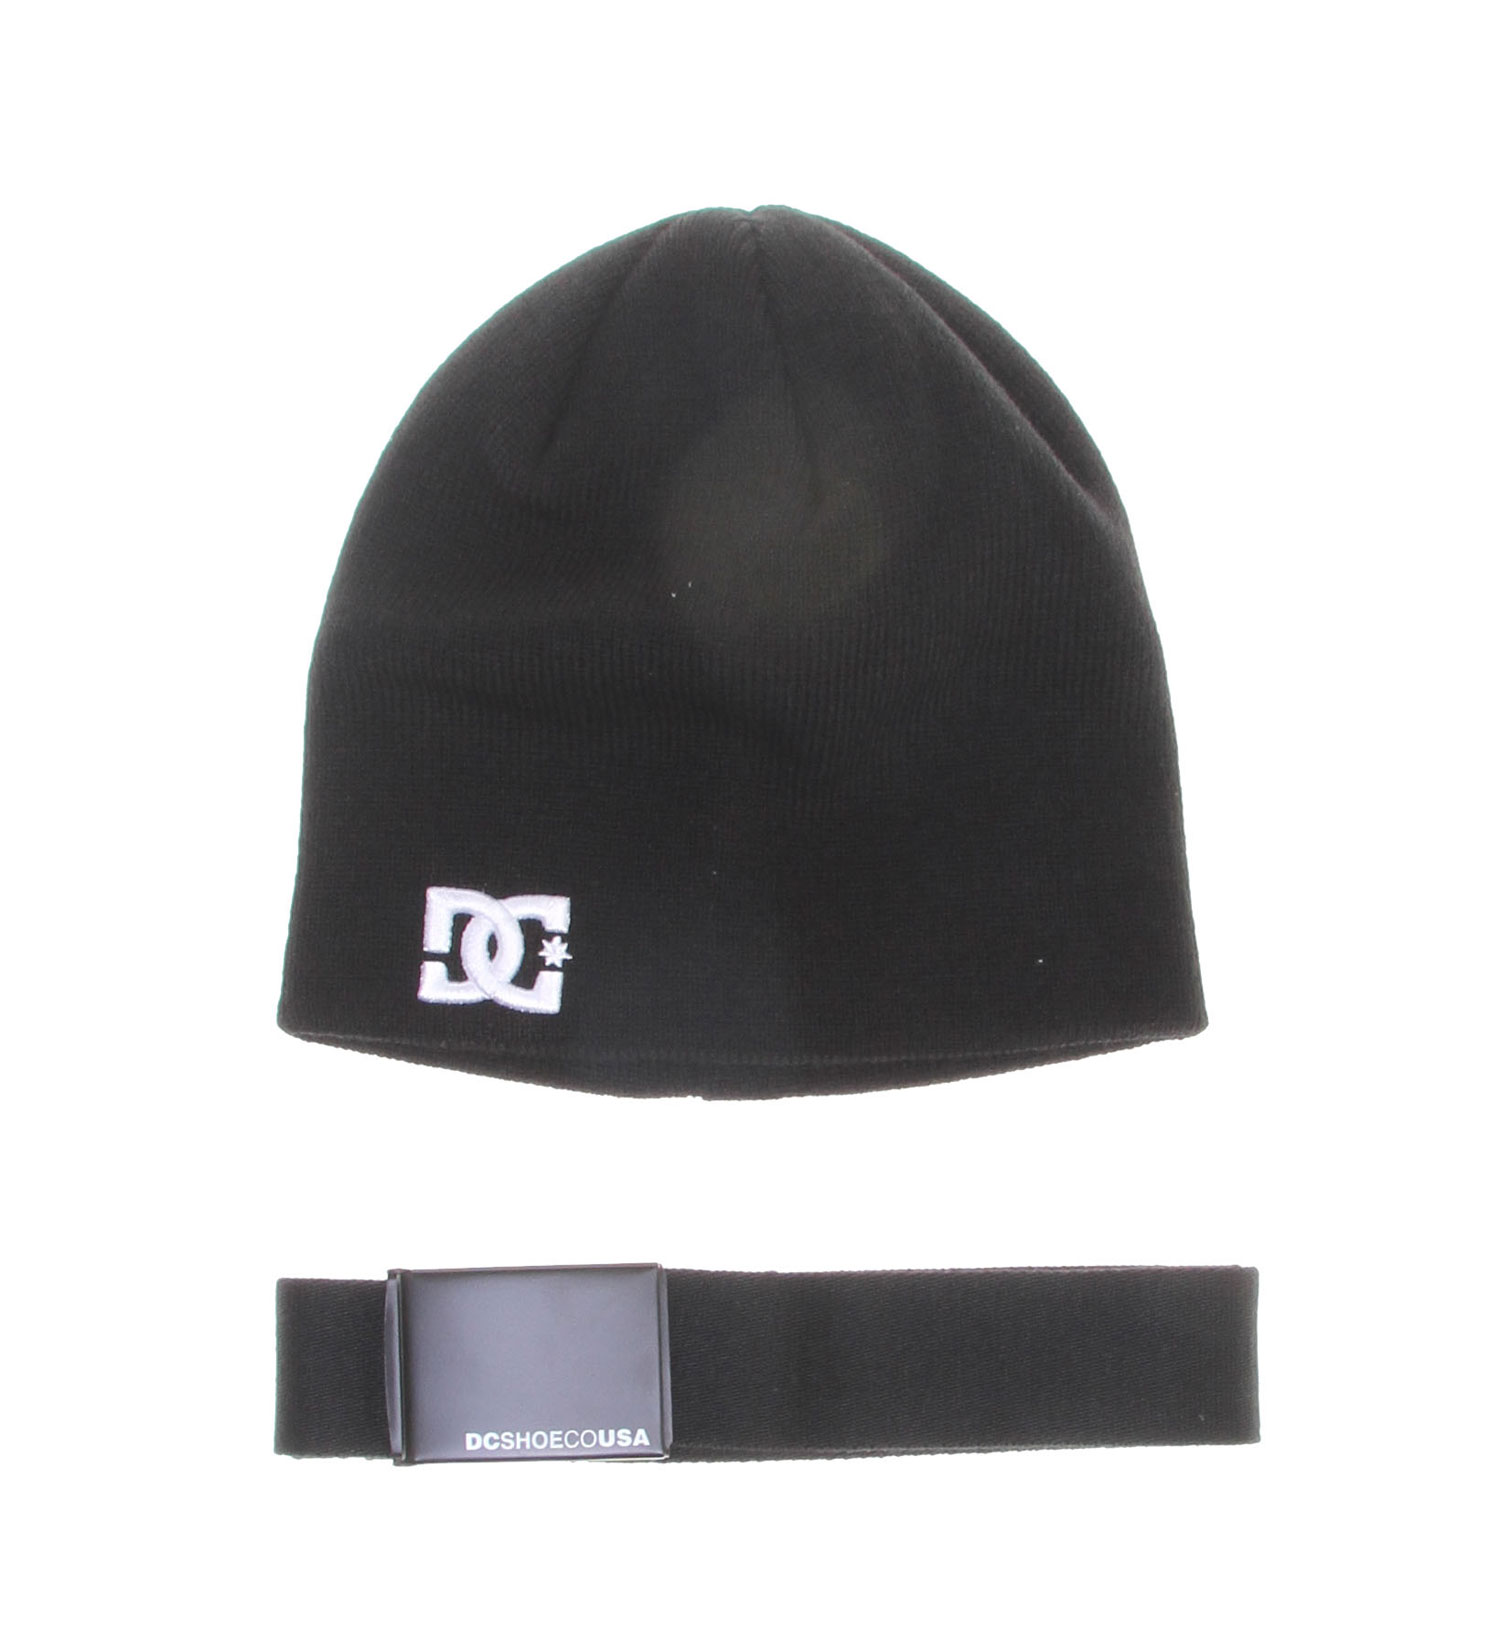 Skateboard This handsome gift pack is a great buy for any student or artist who also loves skating and representing their brand. This pack includes a black beanie with matching belt as well as a matching pencil case that will fit well inside any binder. The gift pack also includes matching stickers and with the savings listed they won't last long!Key Features of the DC Ghea Gift Pack:  Includes: beanie, belt, stickers, and is enclosed in a DC pencil case  100% polyester - $13.95